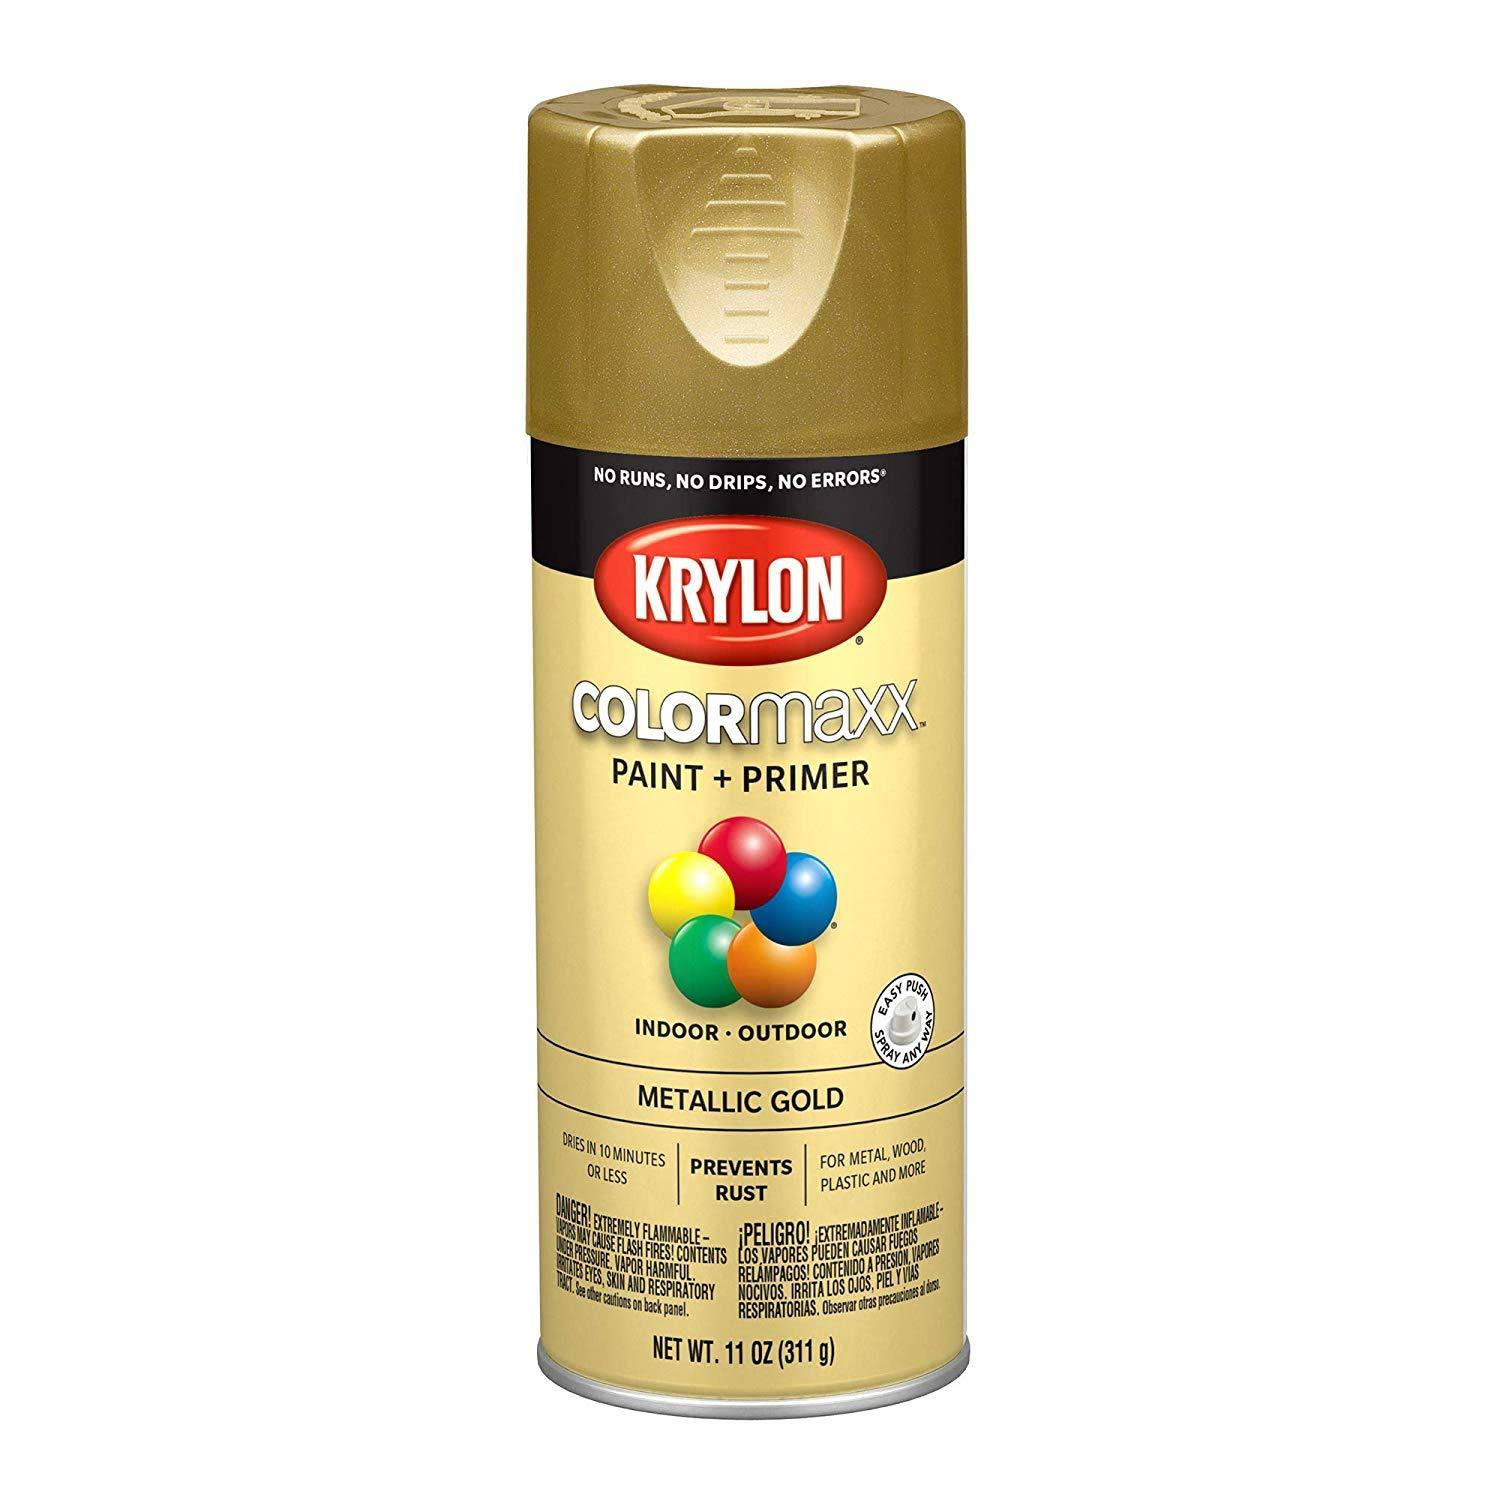 Krylon K05588007 COLORmaxx Spray Paint and Primer - Metallic Gold, 11oz